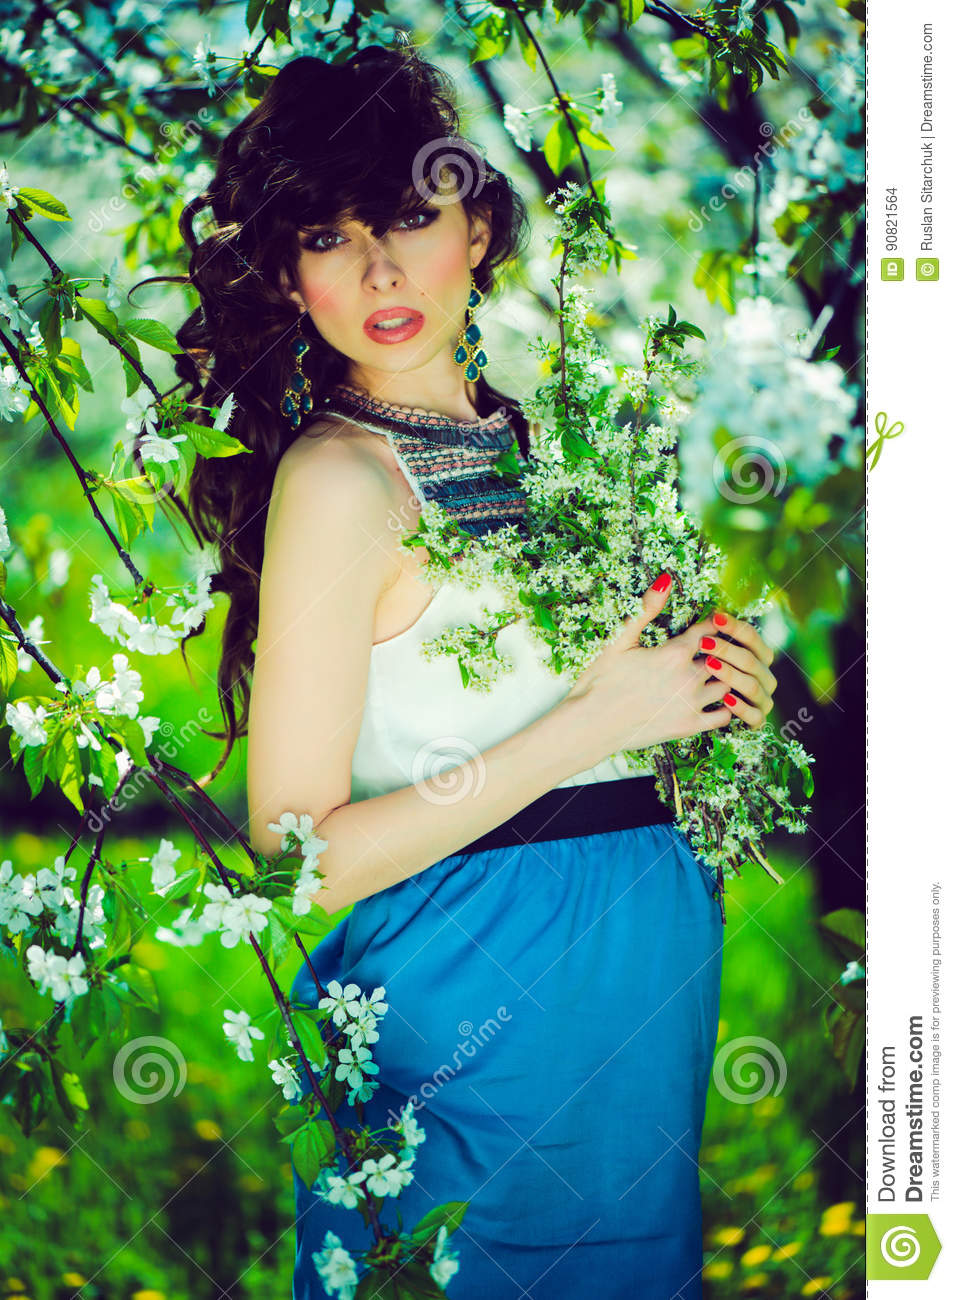 Pregnant Woman In The Garden Stock Photo Image Of Flora Blooming